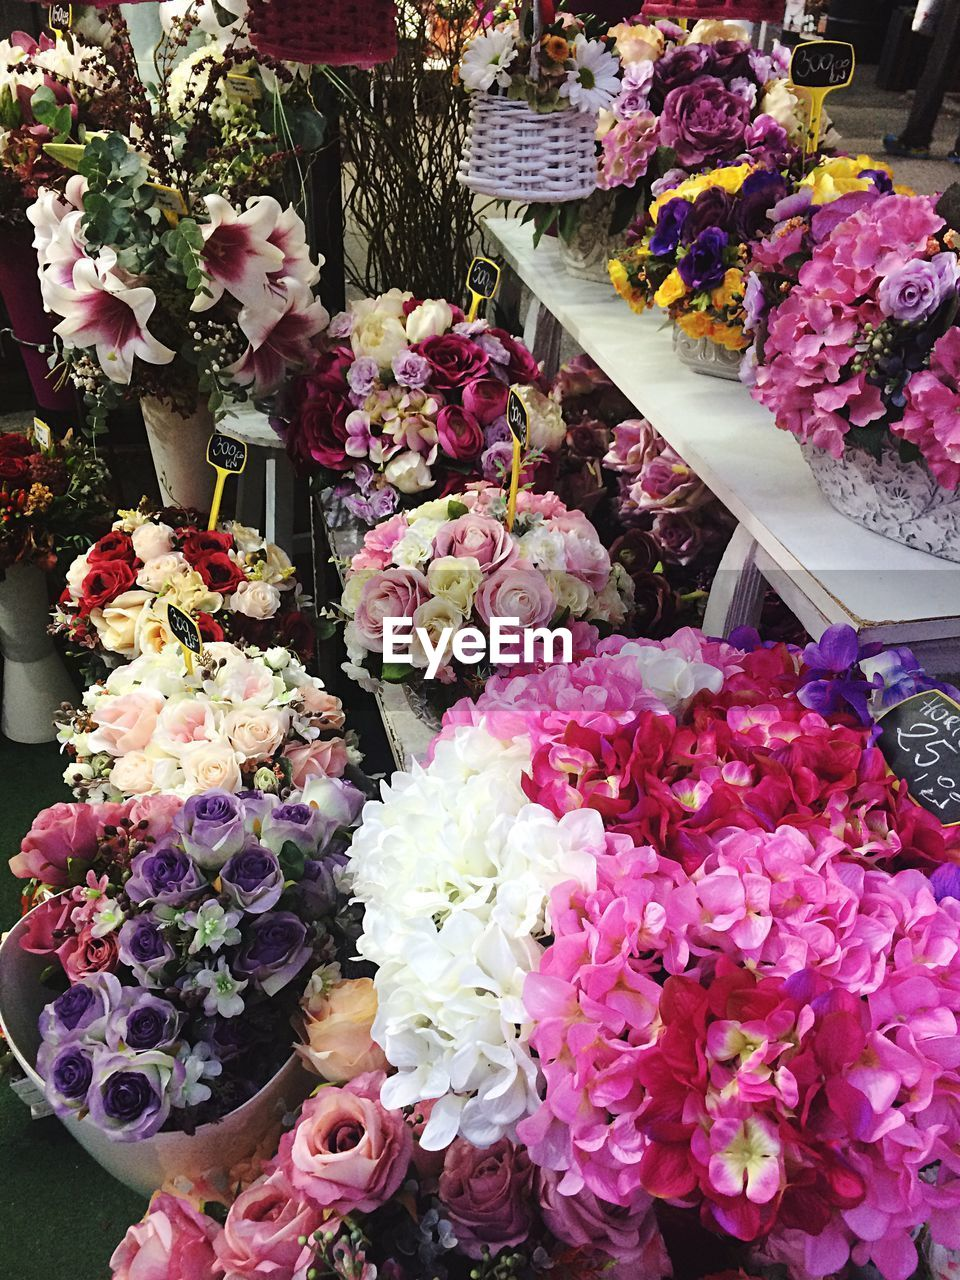 flower, retail, bouquet, variation, flower shop, choice, small business, for sale, flower market, retail display, multi colored, fragility, market, arrangement, freshness, consumerism, abundance, no people, day, beauty in nature, nature, close-up, outdoors, business, flower head, florist